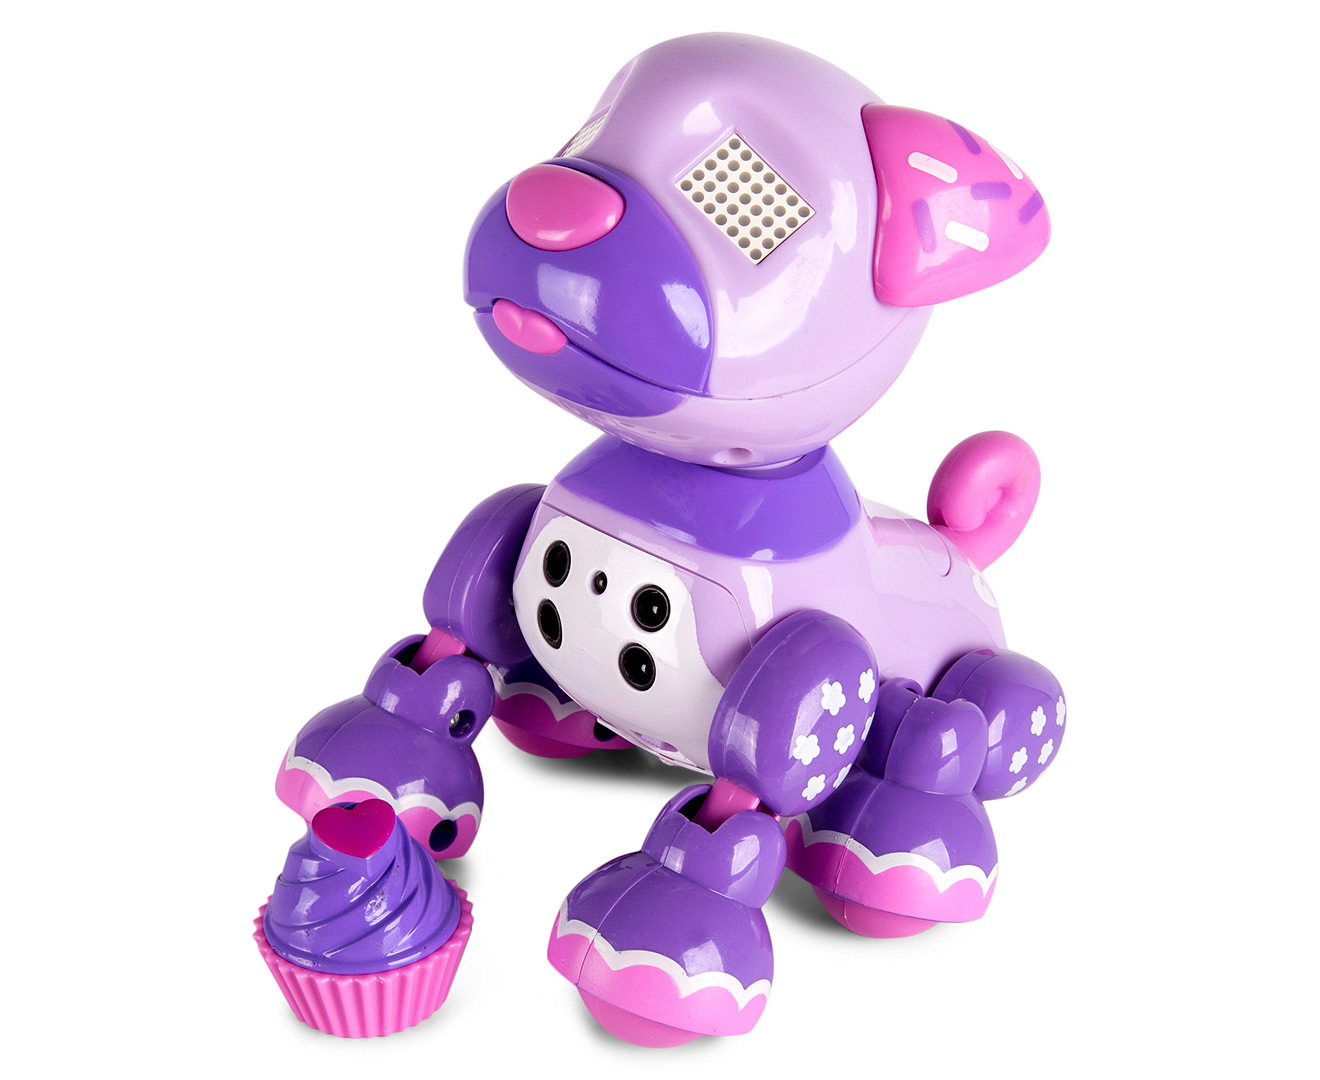 Zoomer Zuppies Interactive Robot Dog Cupcake